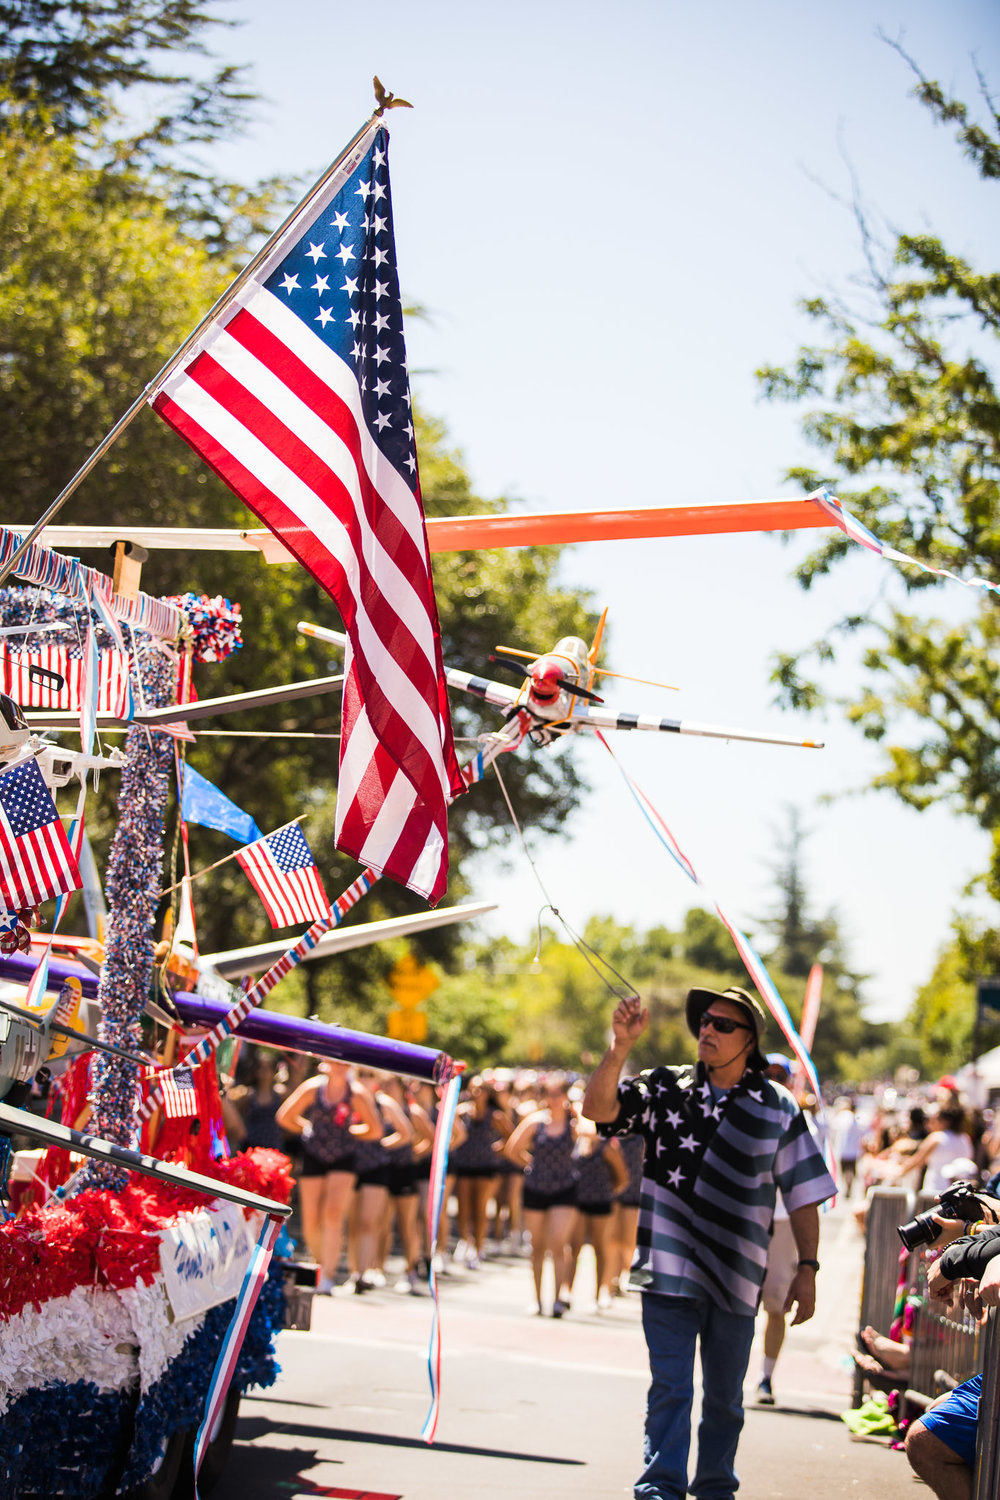 Archer_Inspired_Photography_Morgan_Hill_California_4th_of_july_parade-171.jpg